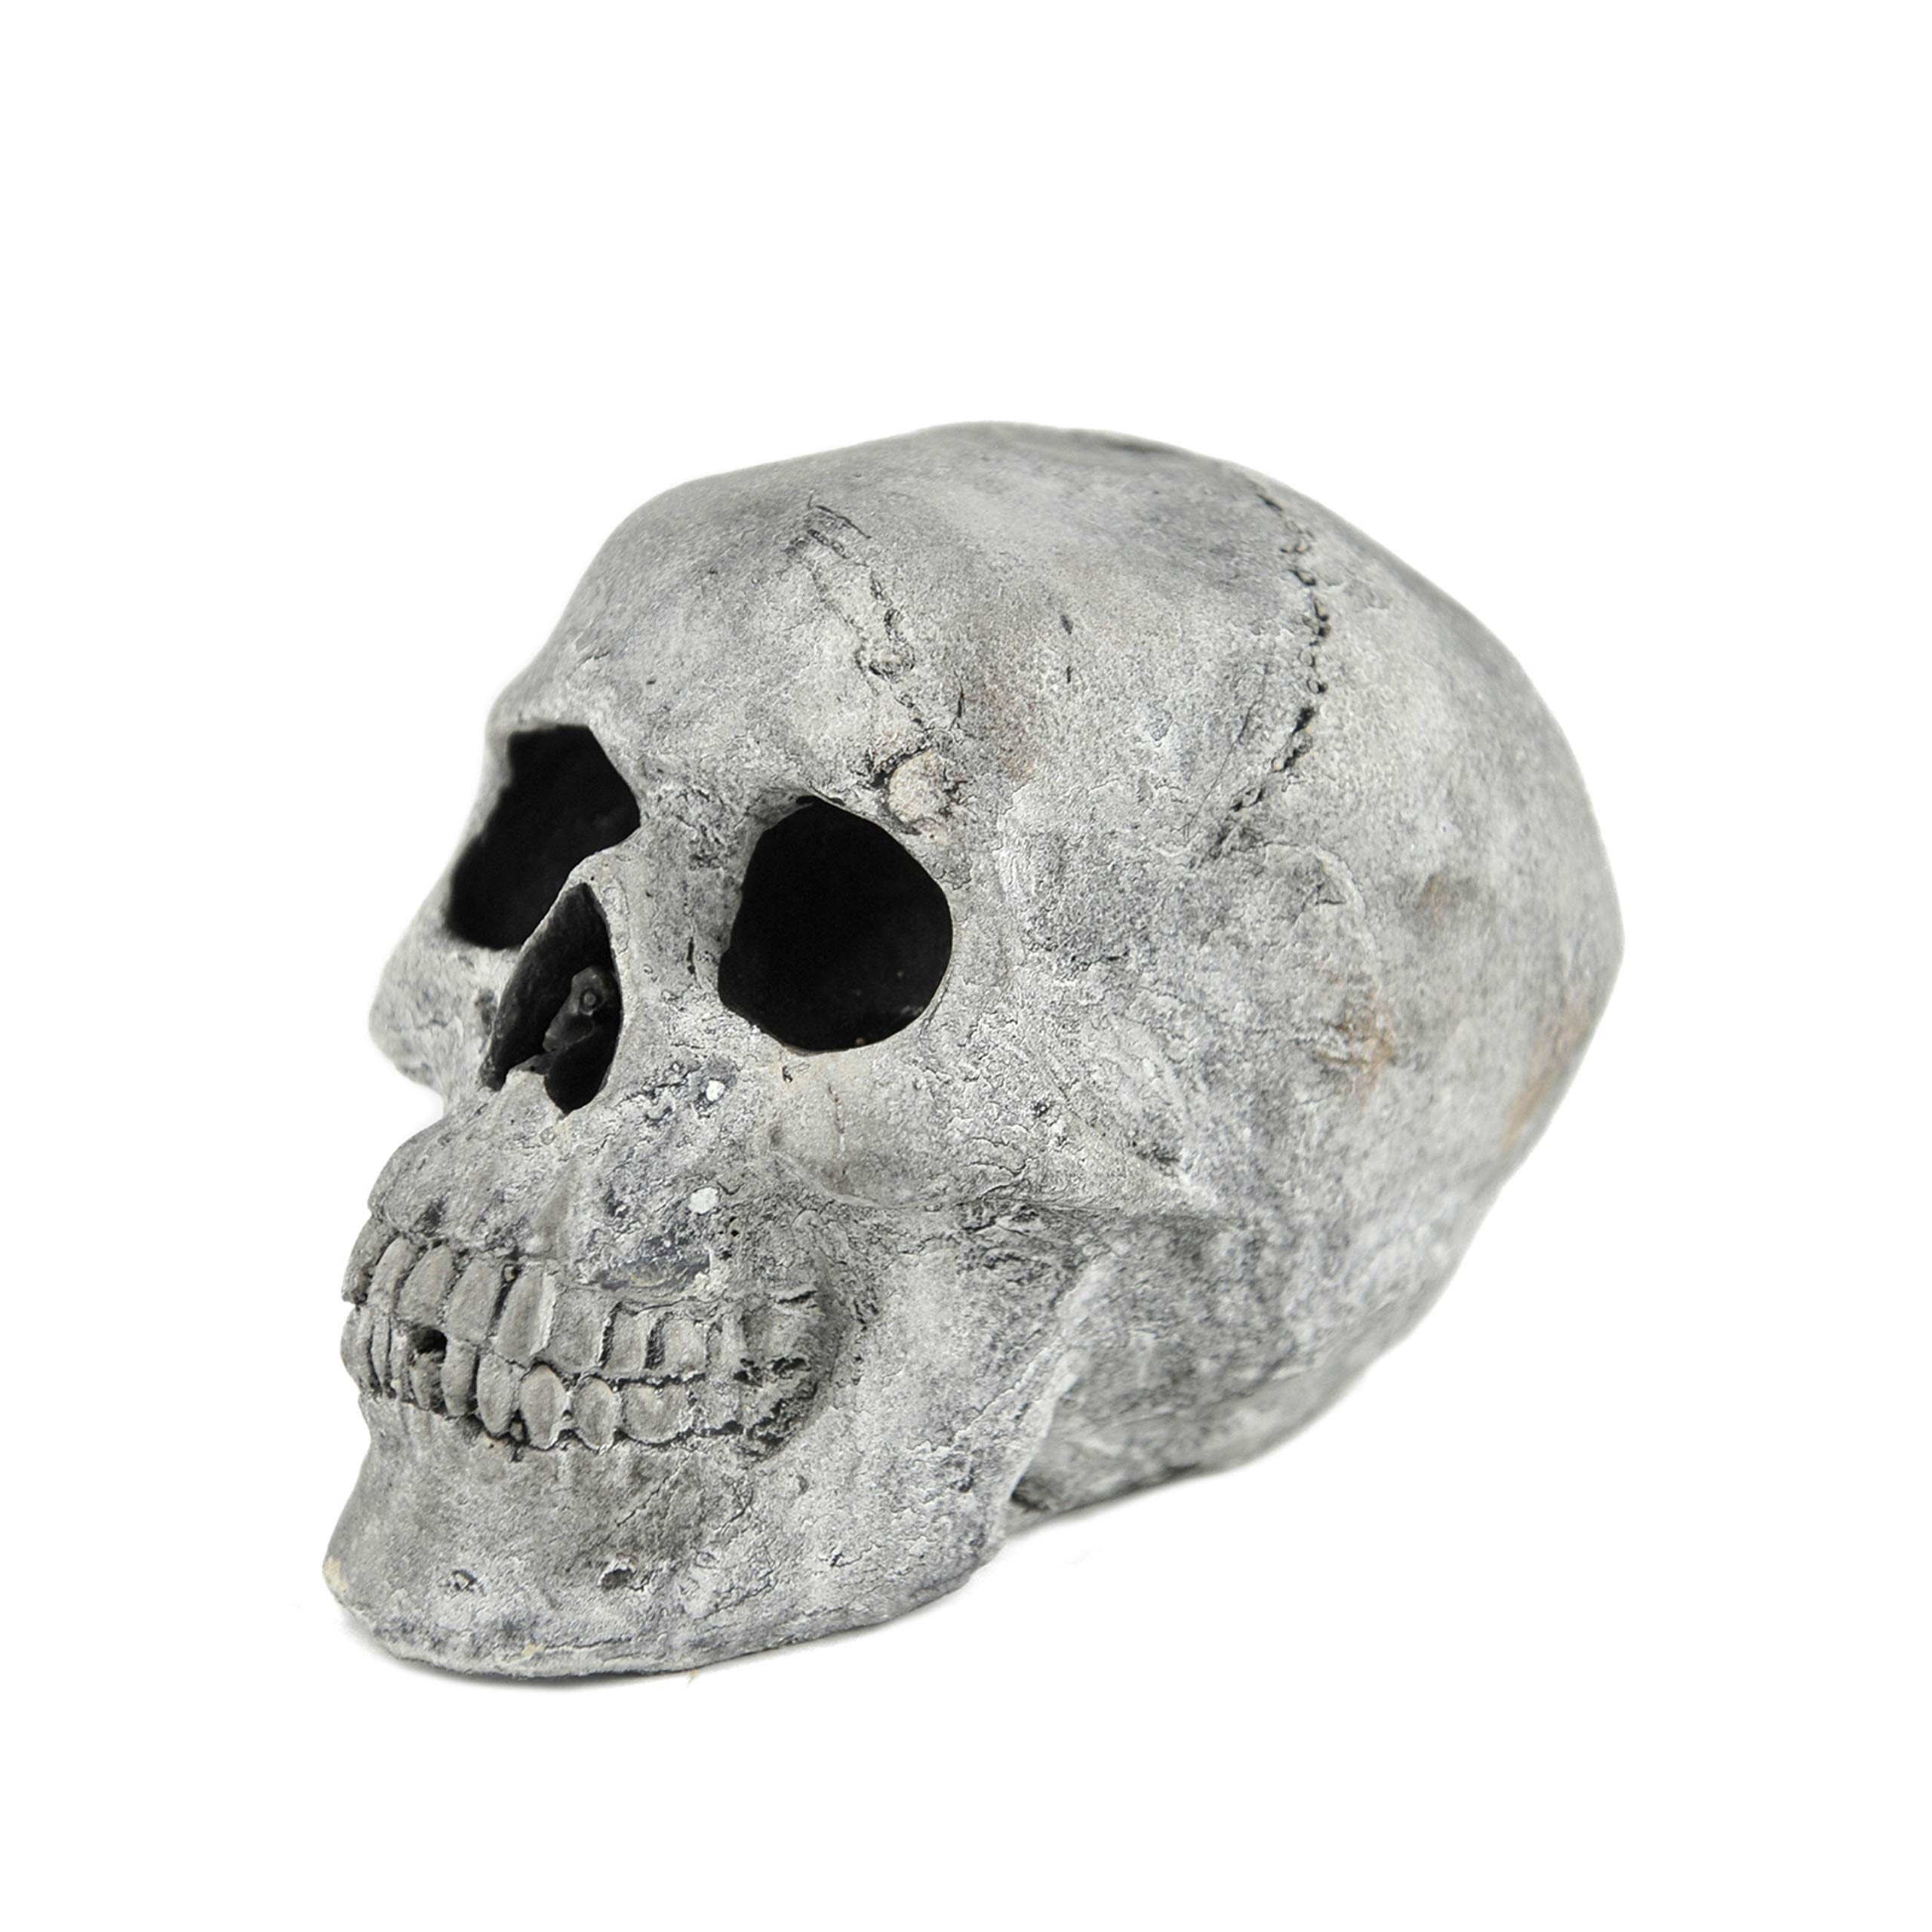 Myard Fireproof Imitated Human Fire Pit Skull Gas Log for NG, LP Wood Fireplace, Firepit, Campfire, Halloween Decor, BBQ (Qty 1, White - Mini, One Piece)